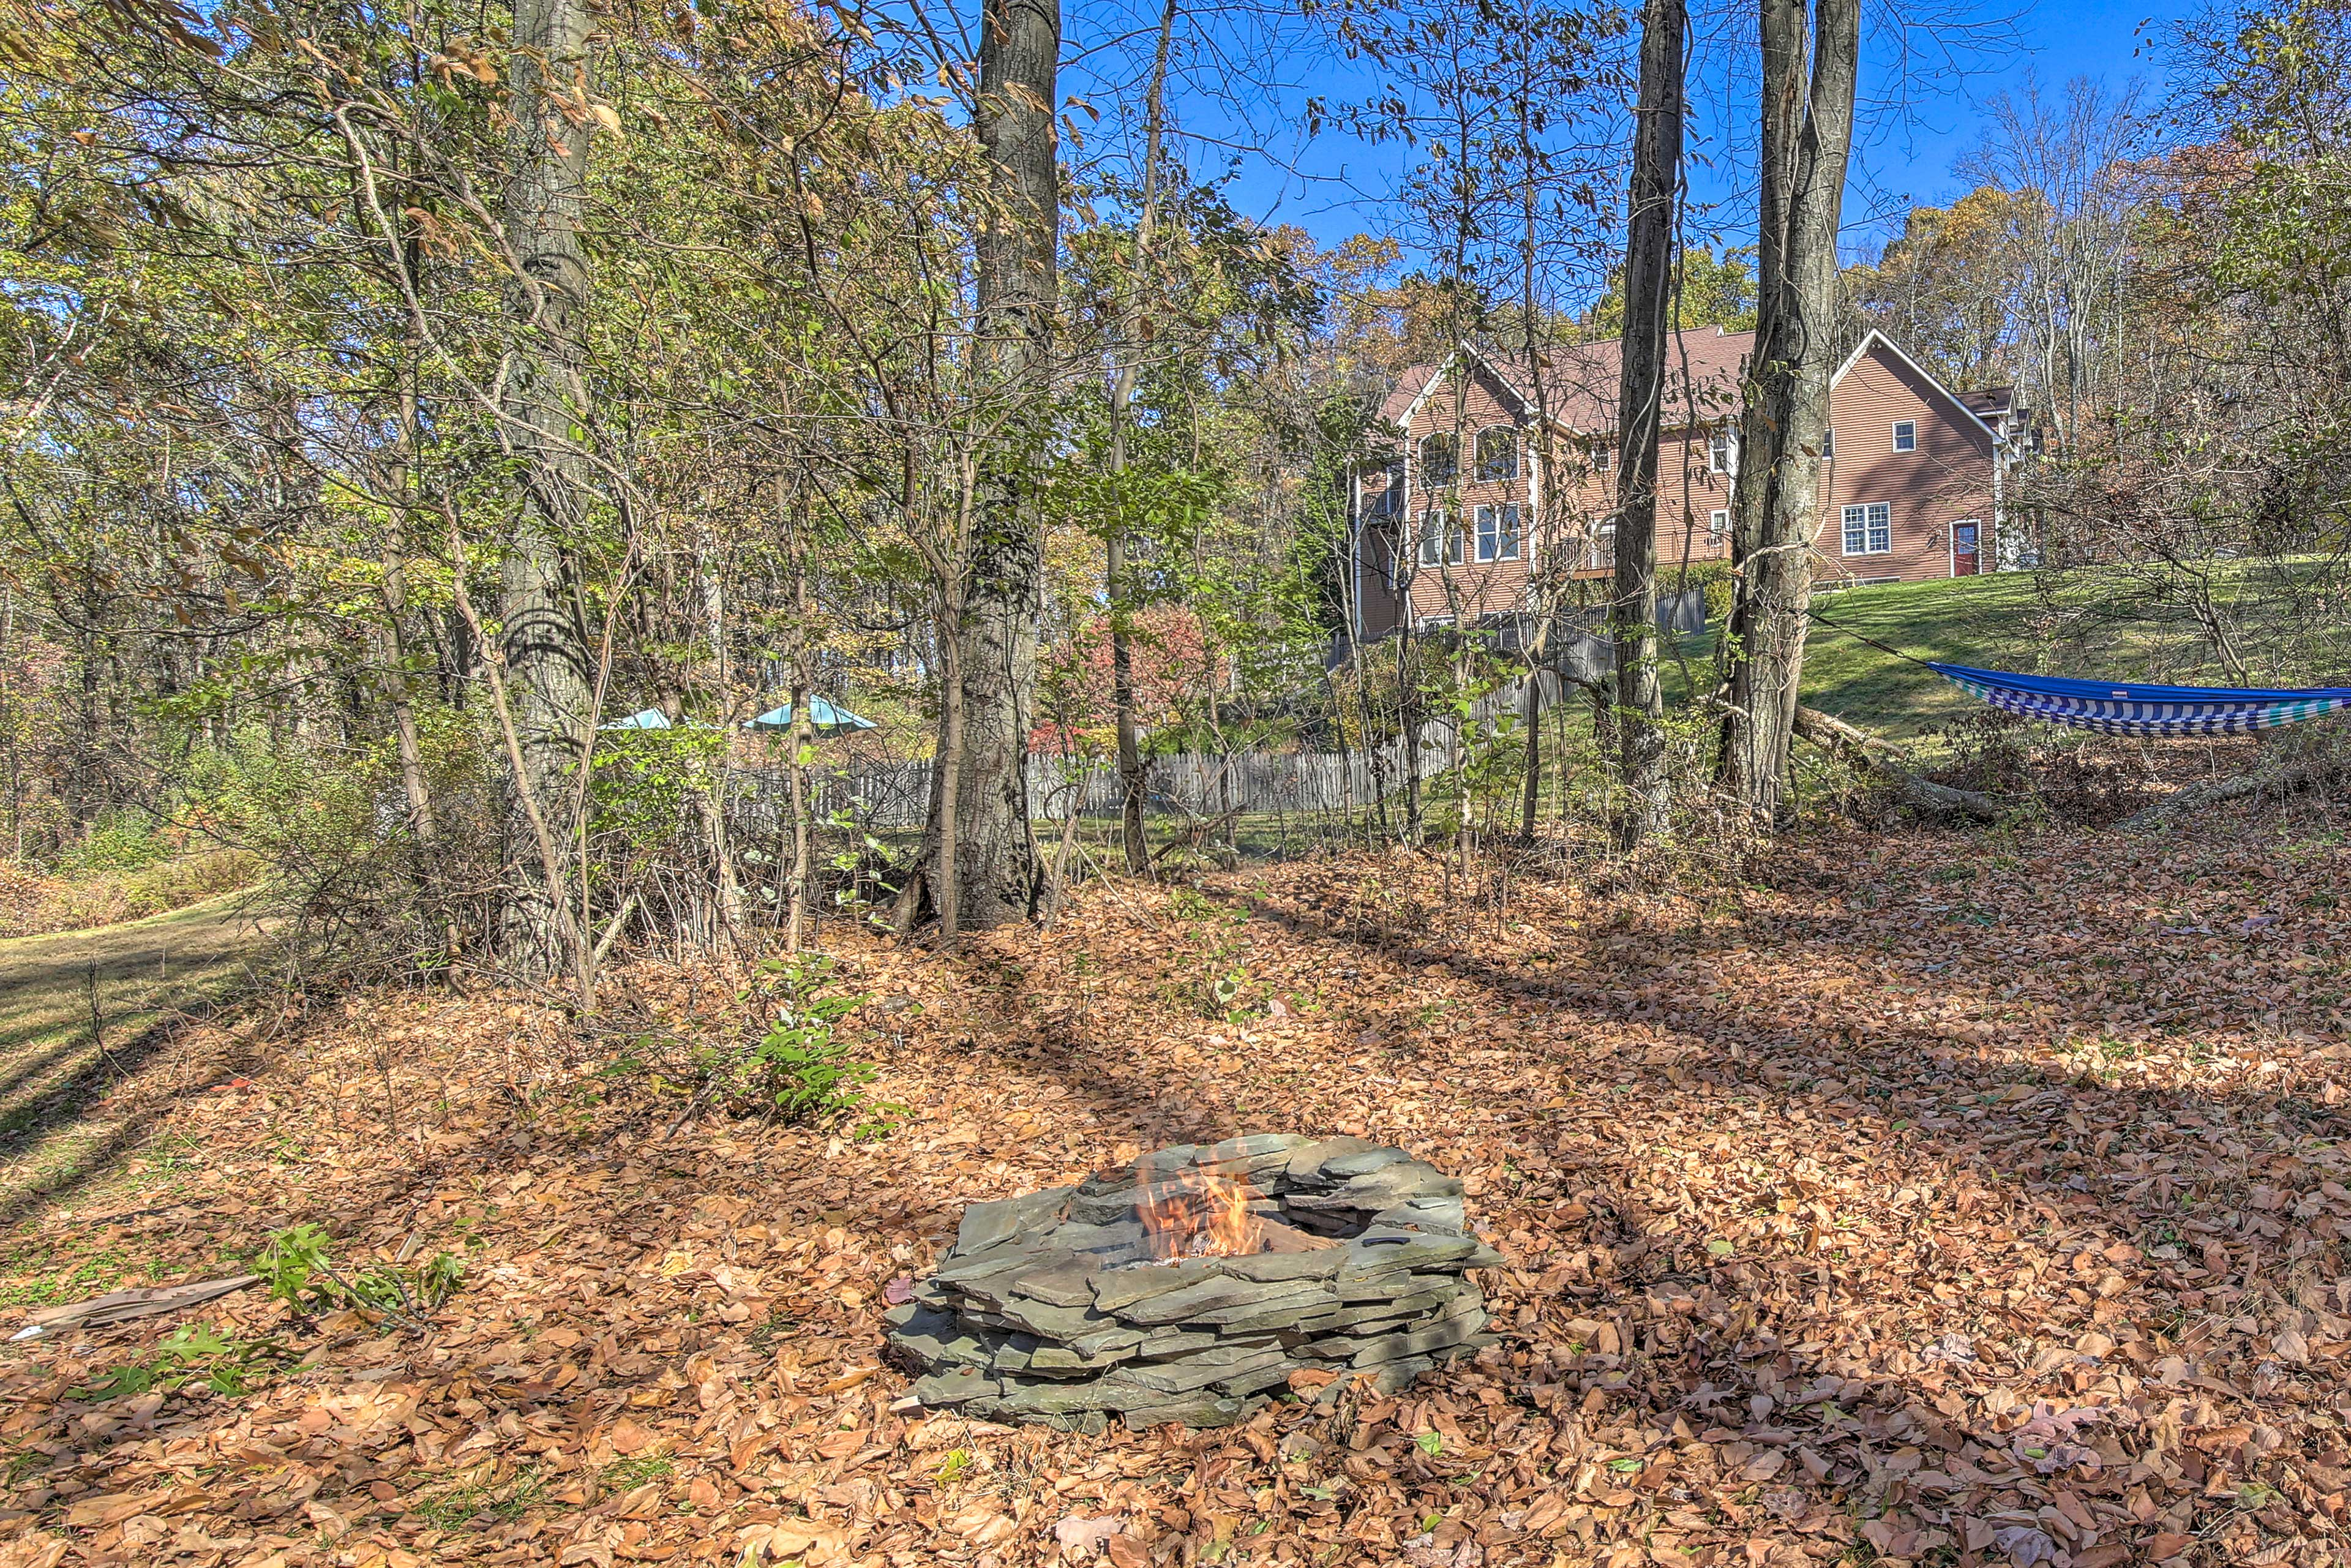 This secluded property also provides a fire pit & hammock.